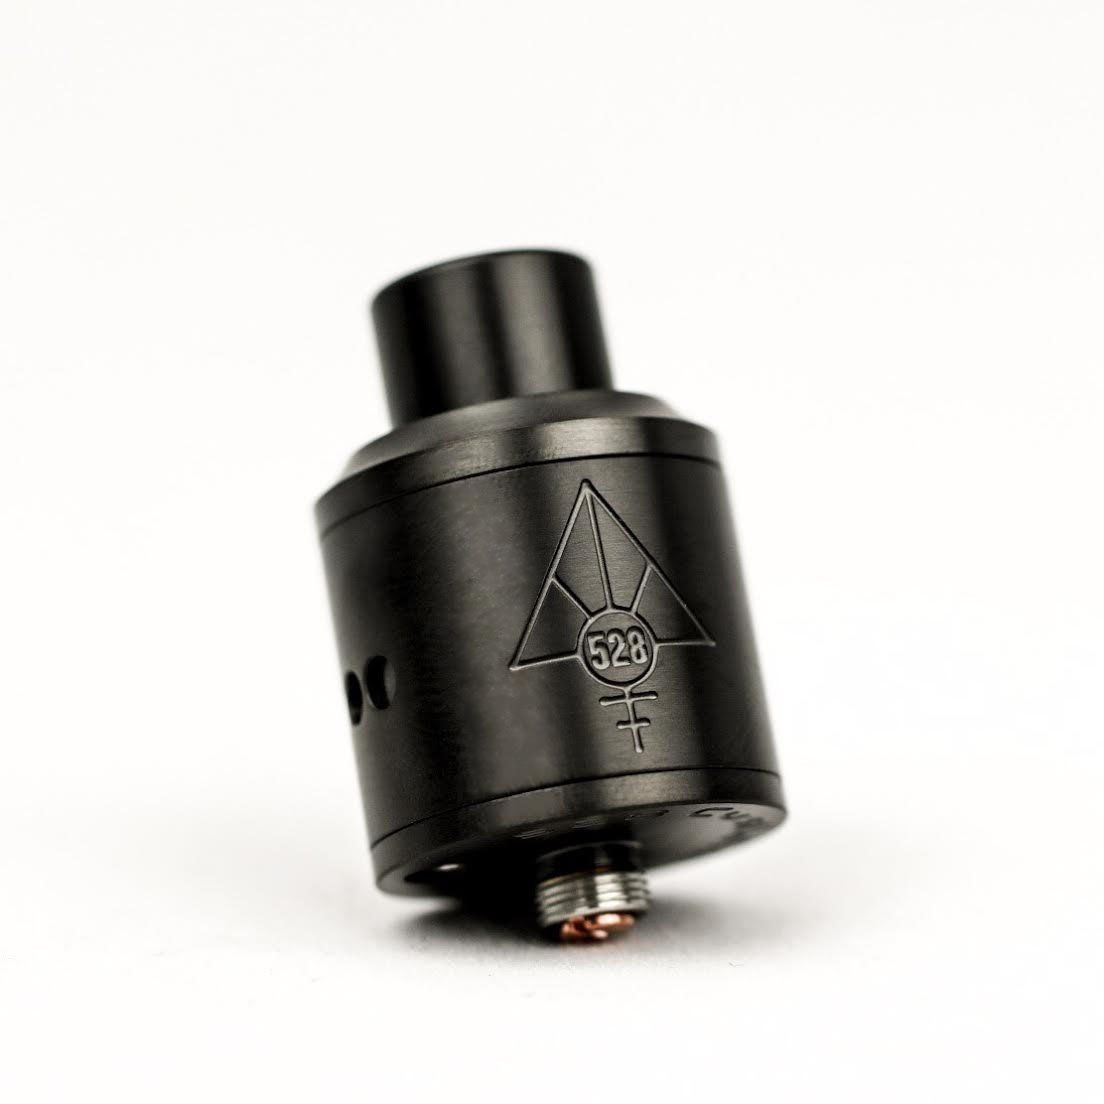 Goon RDA 24mm - 528 Custom